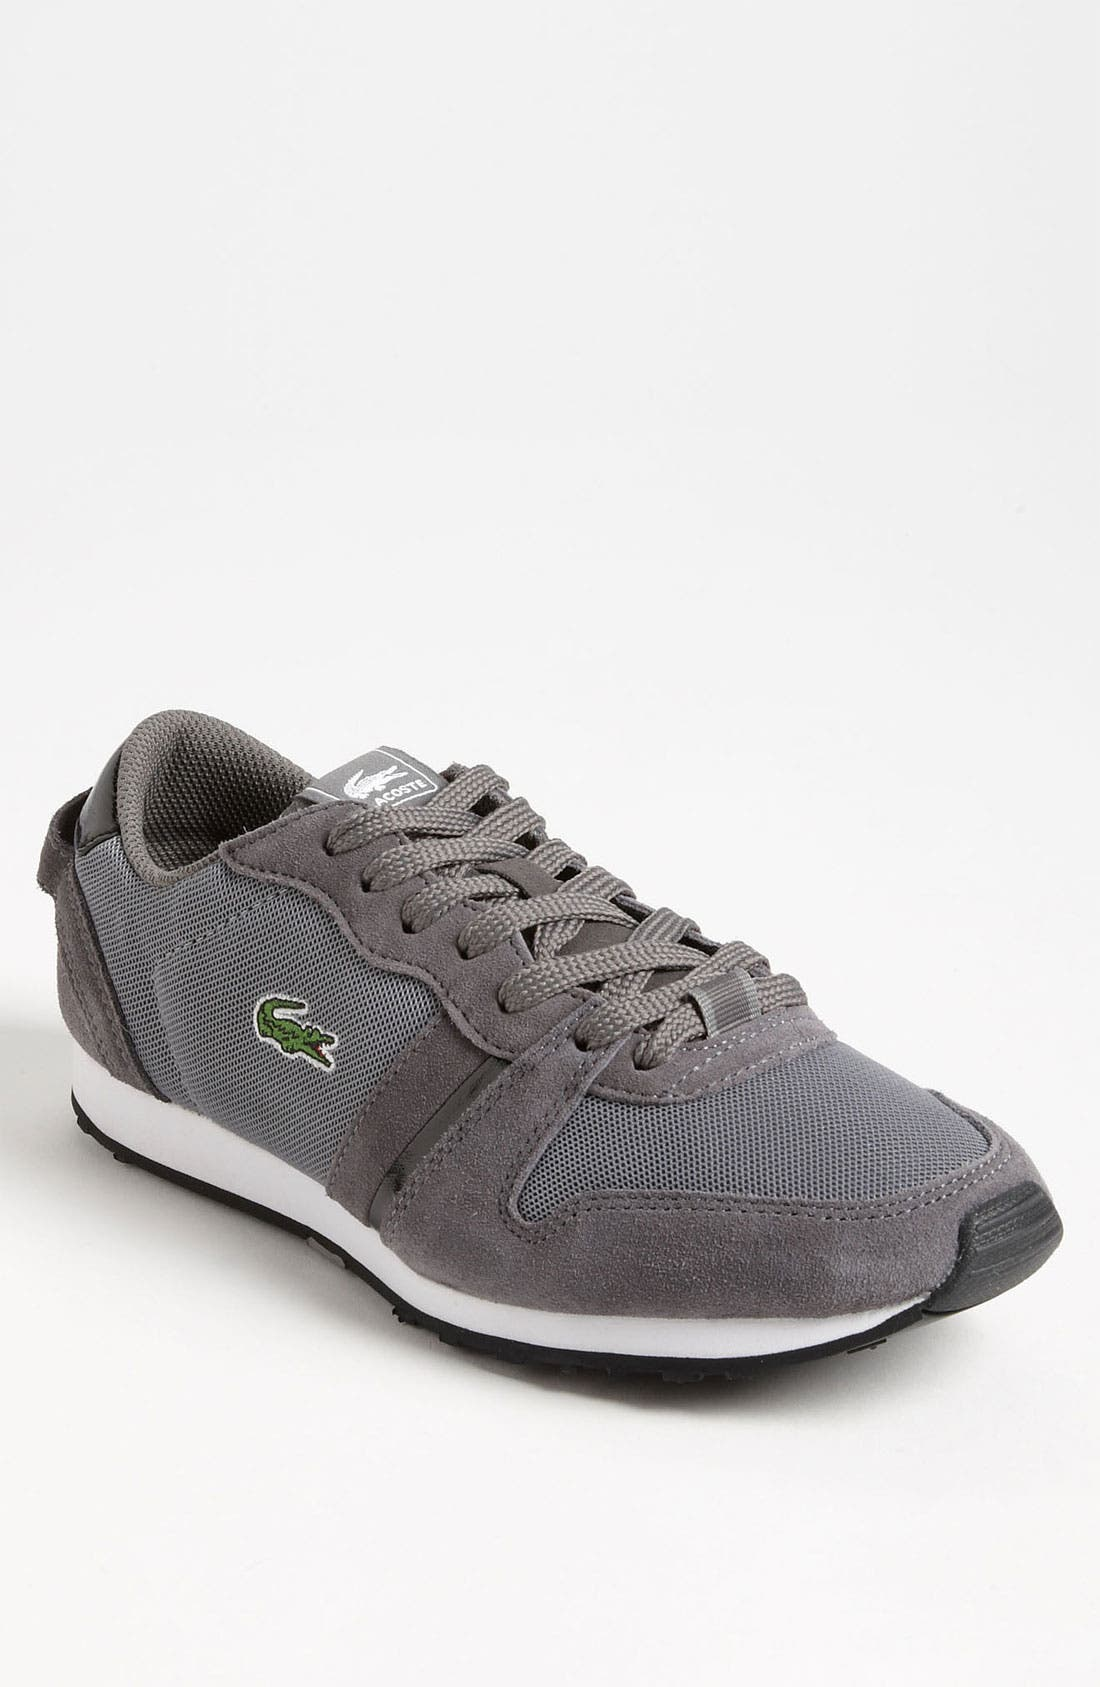 Main Image - Lacoste 'Tevere CRE' Sneaker